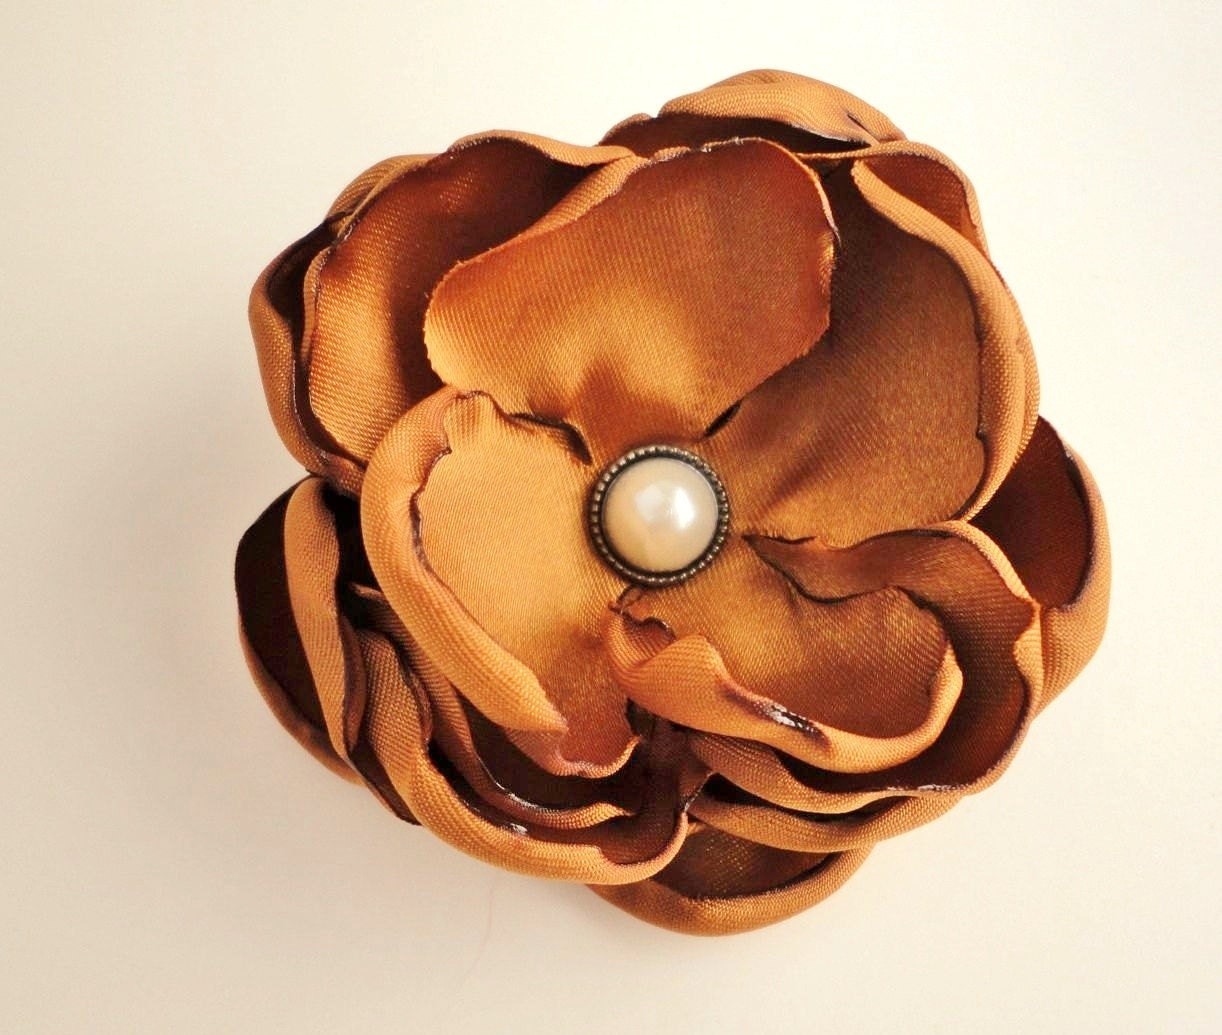 Orange Fabric Flower Hair Clip, Rustic Fall Autumn Wedding  Bridesmaids Bridal, Pumpkin Spice, Amber Copper